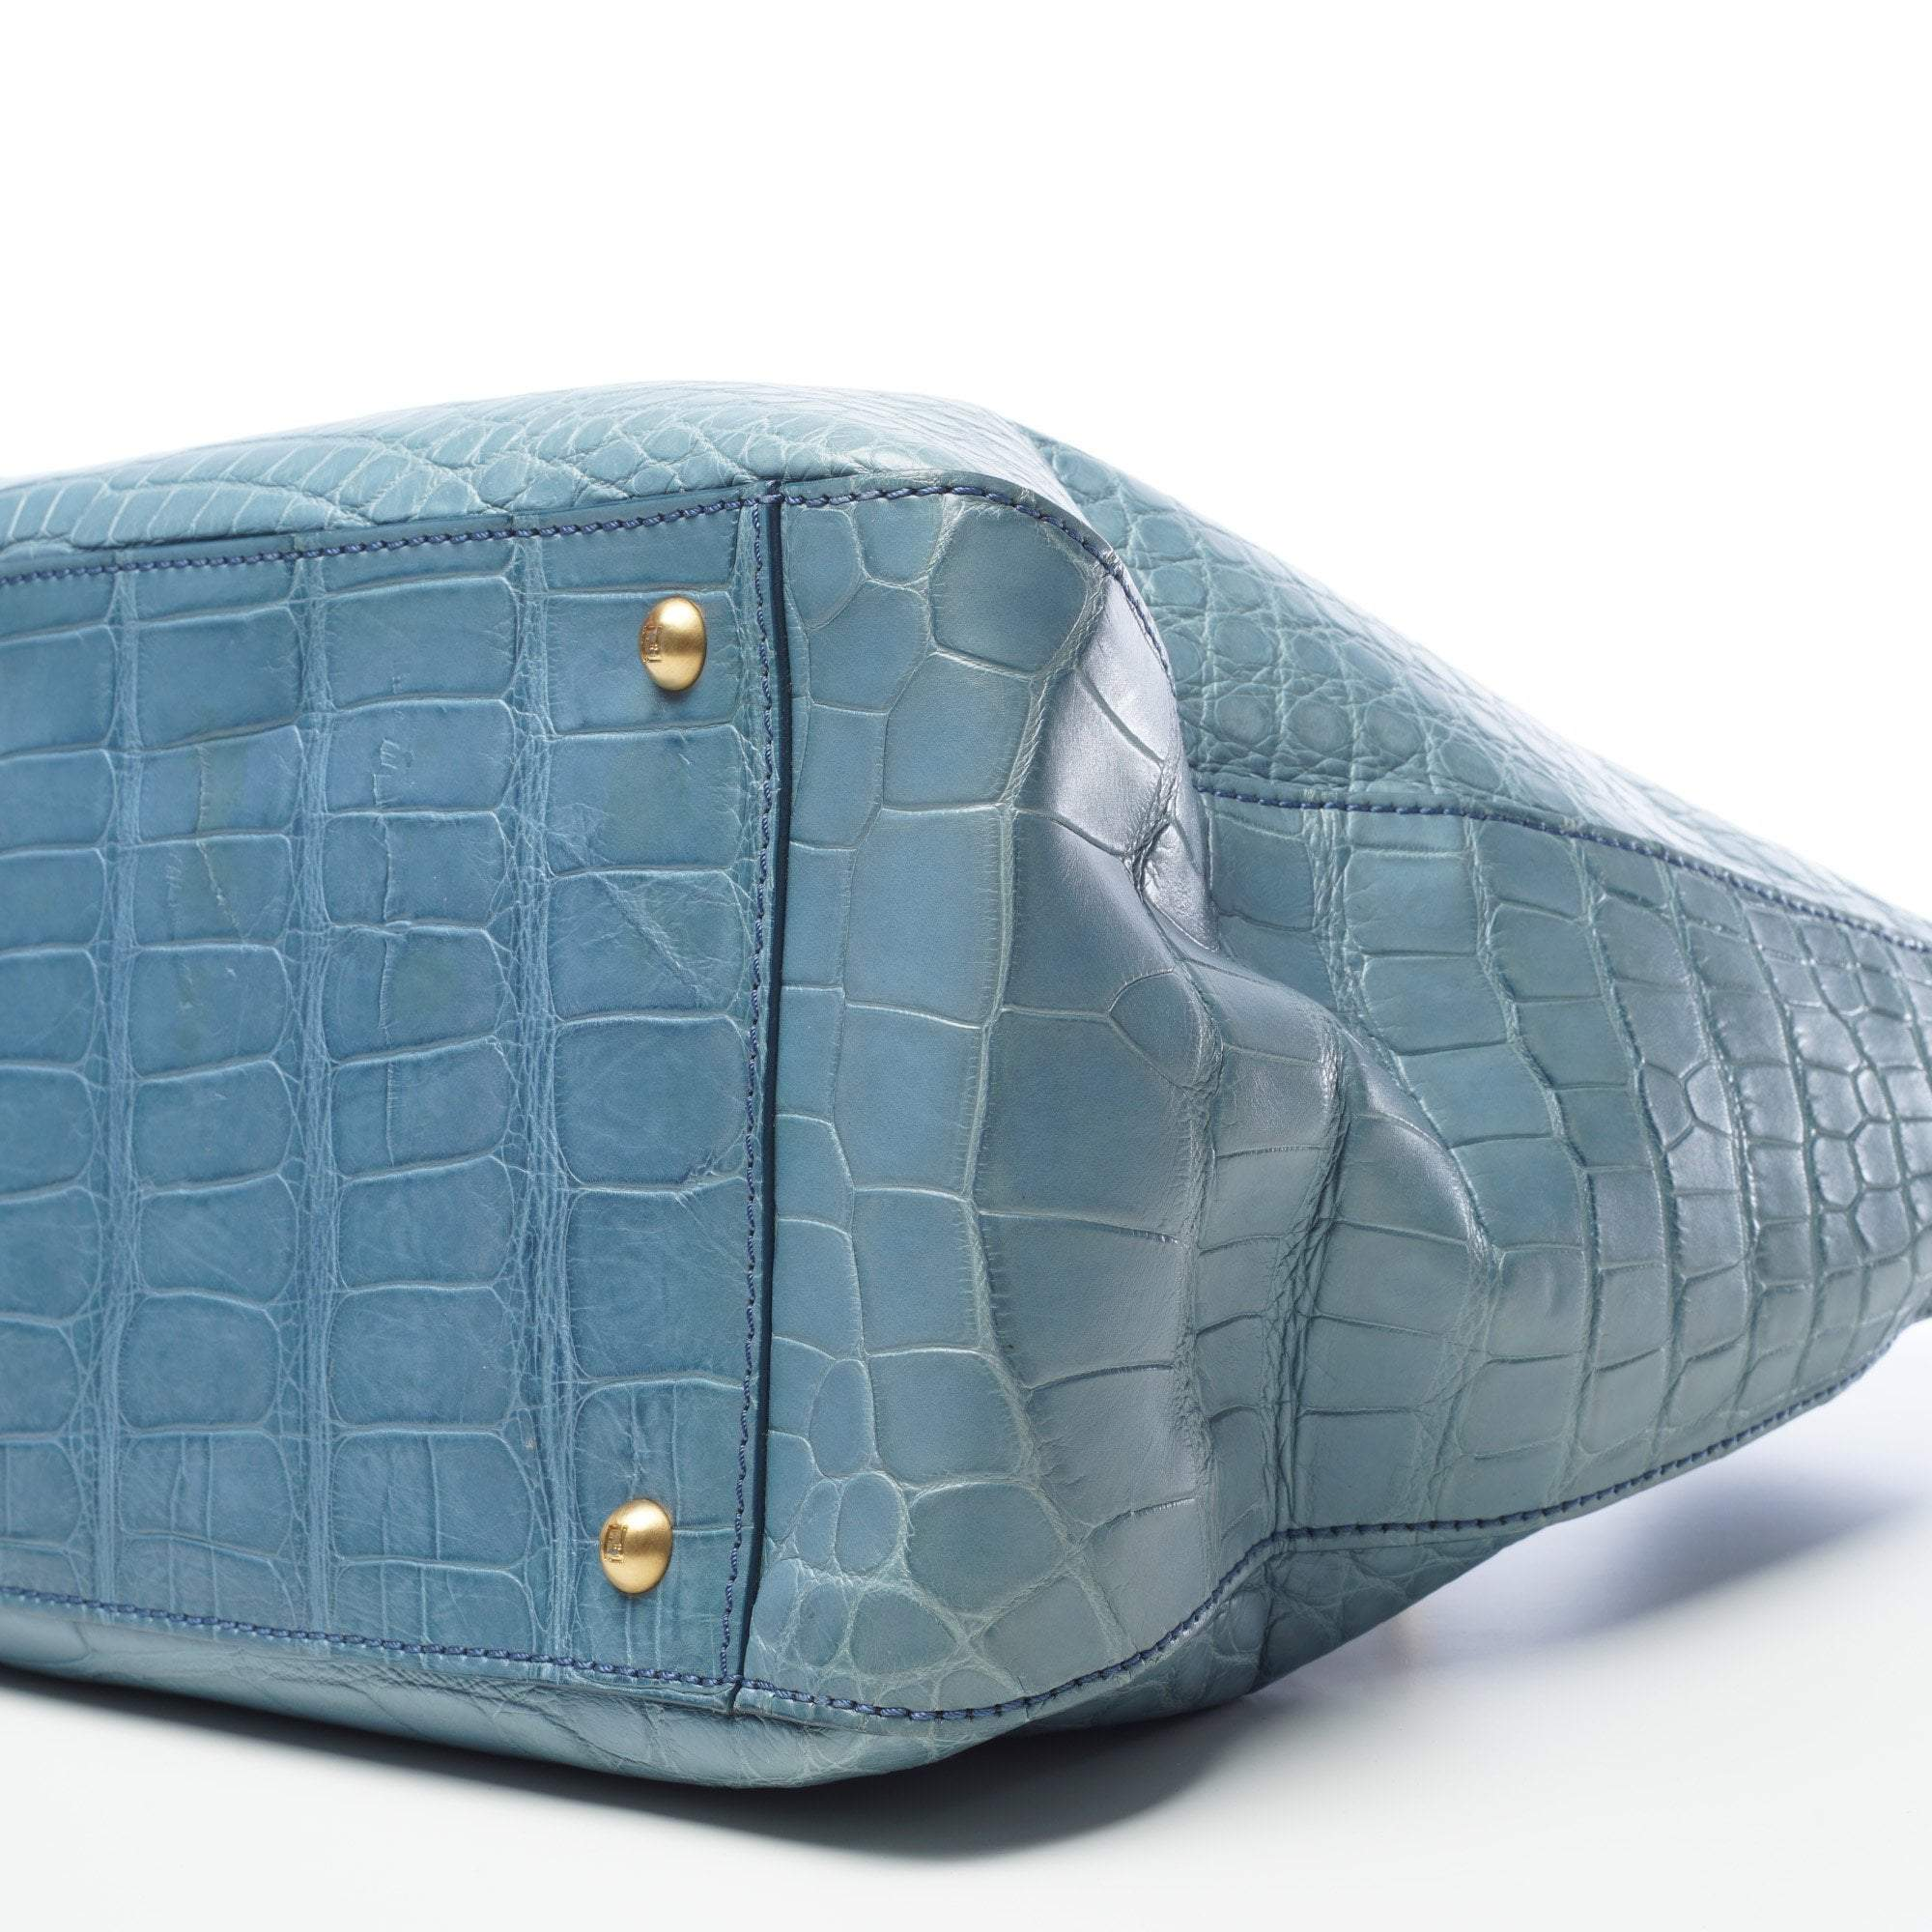 Fendi Crocodile Tote Blue Bag